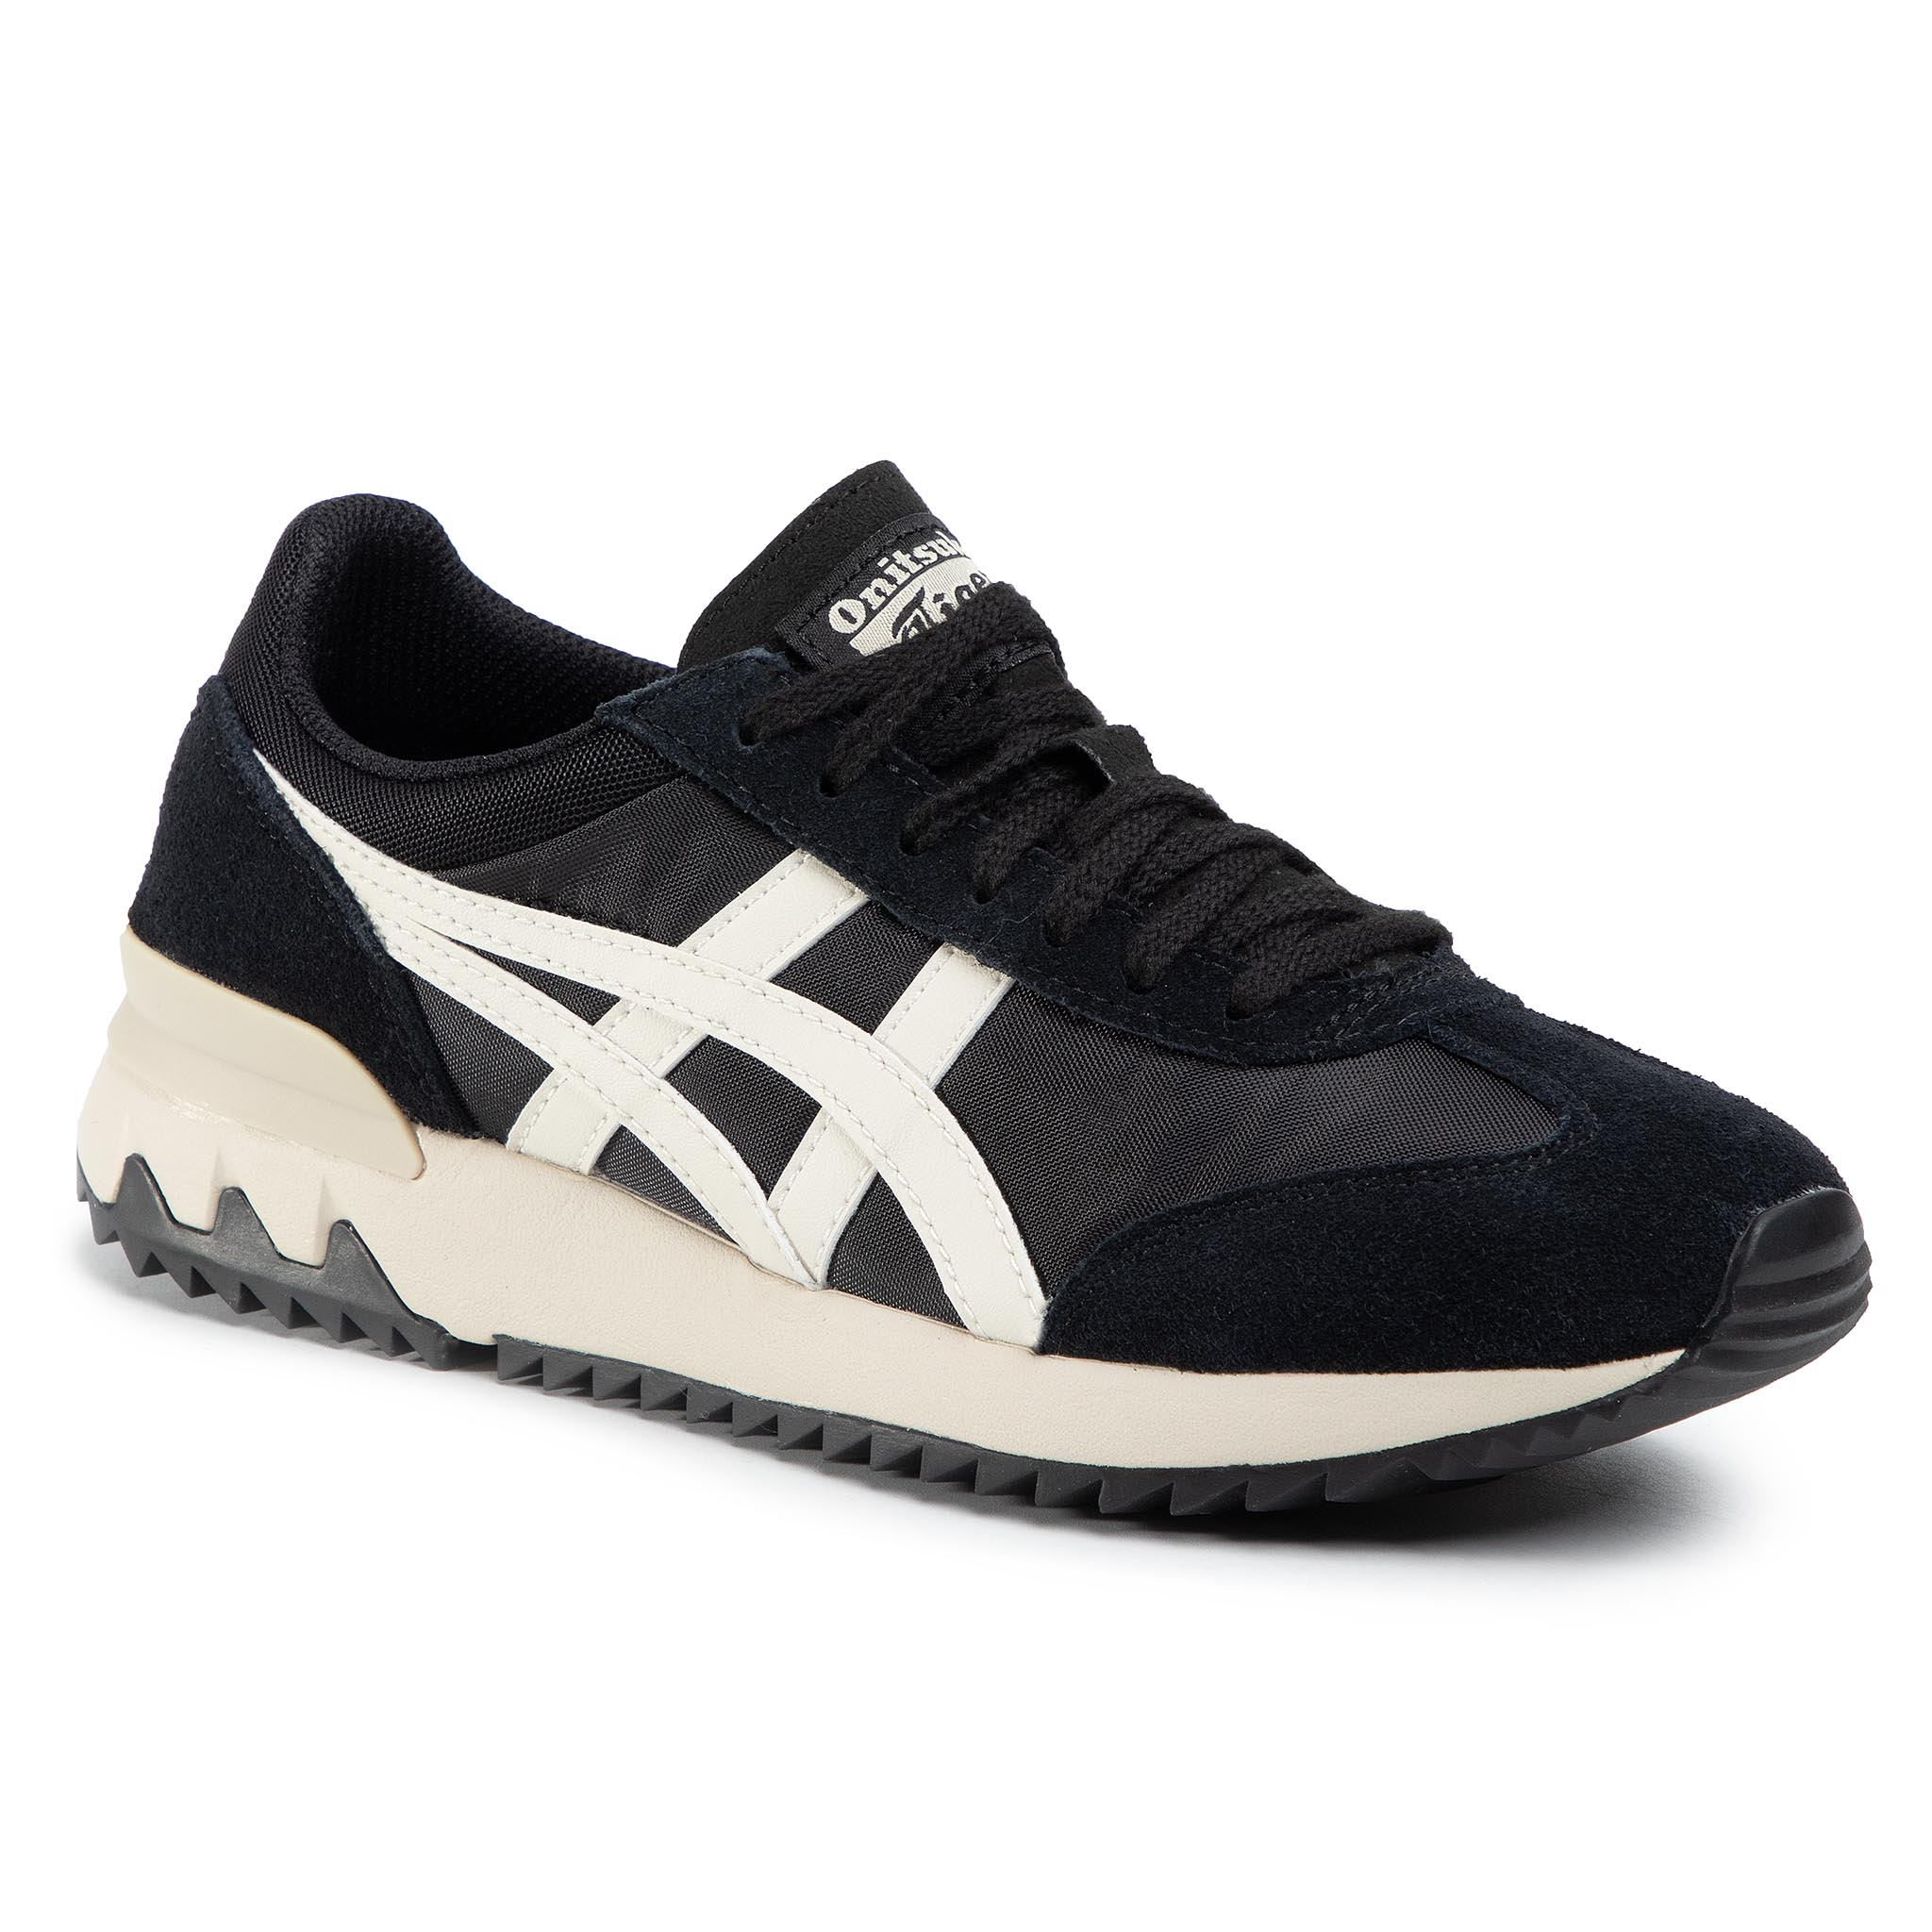 Sneaker Onitsuka Tiger Sneakers ONITSUKA TIGER - California 78 Ex 1183A355 Black/Oatmeal 002